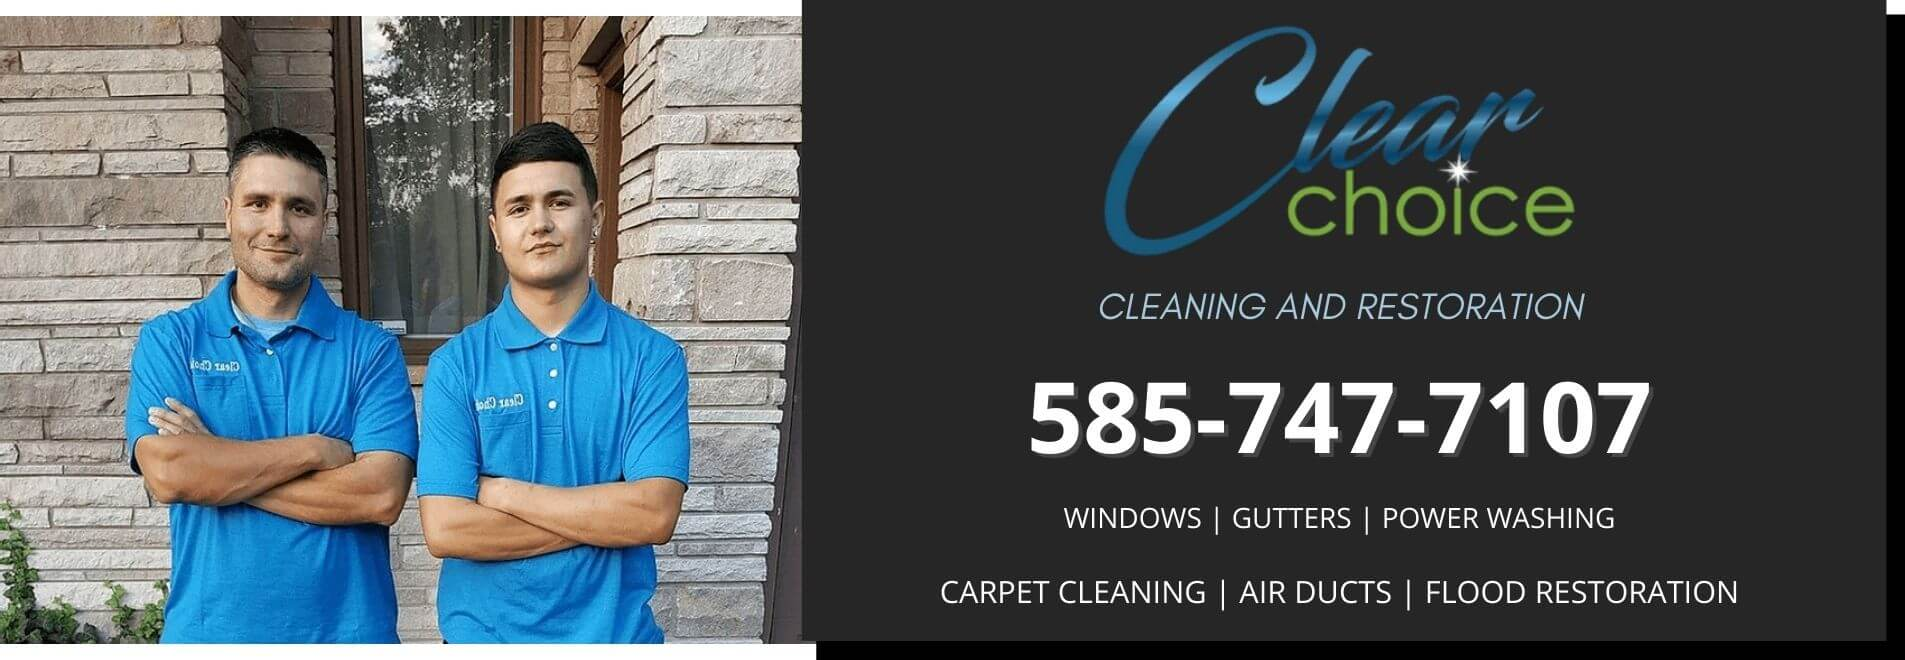 Clear Choice Cleaning Restoration Rochester